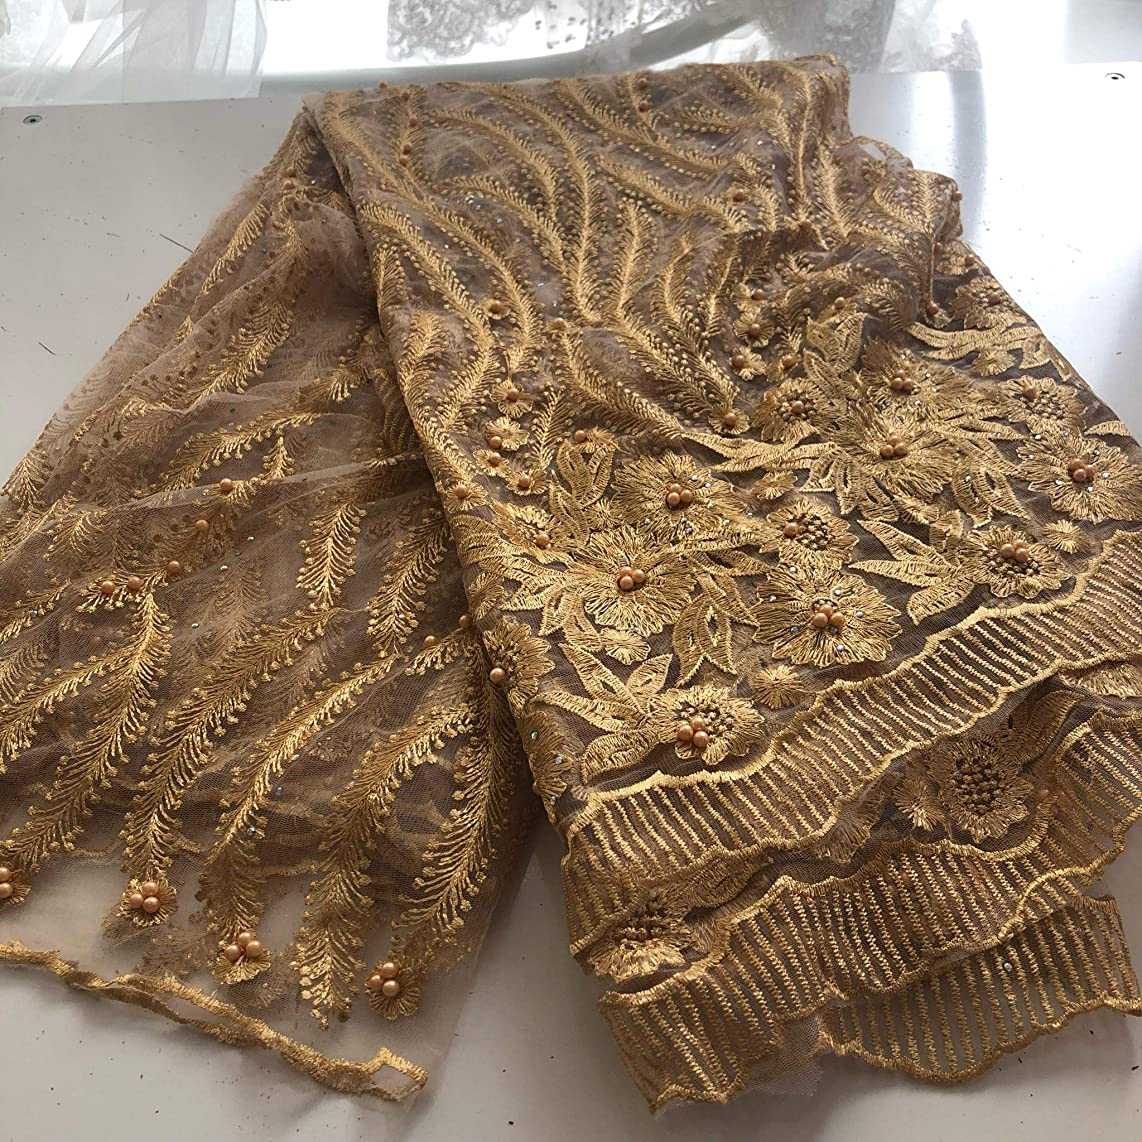 3 Yards African Lace Fabric Nigerian French Beaded Lace Net Fabric Embroidered Fabric for Wedding Party Dress Corded Guipure K7 (Gold)